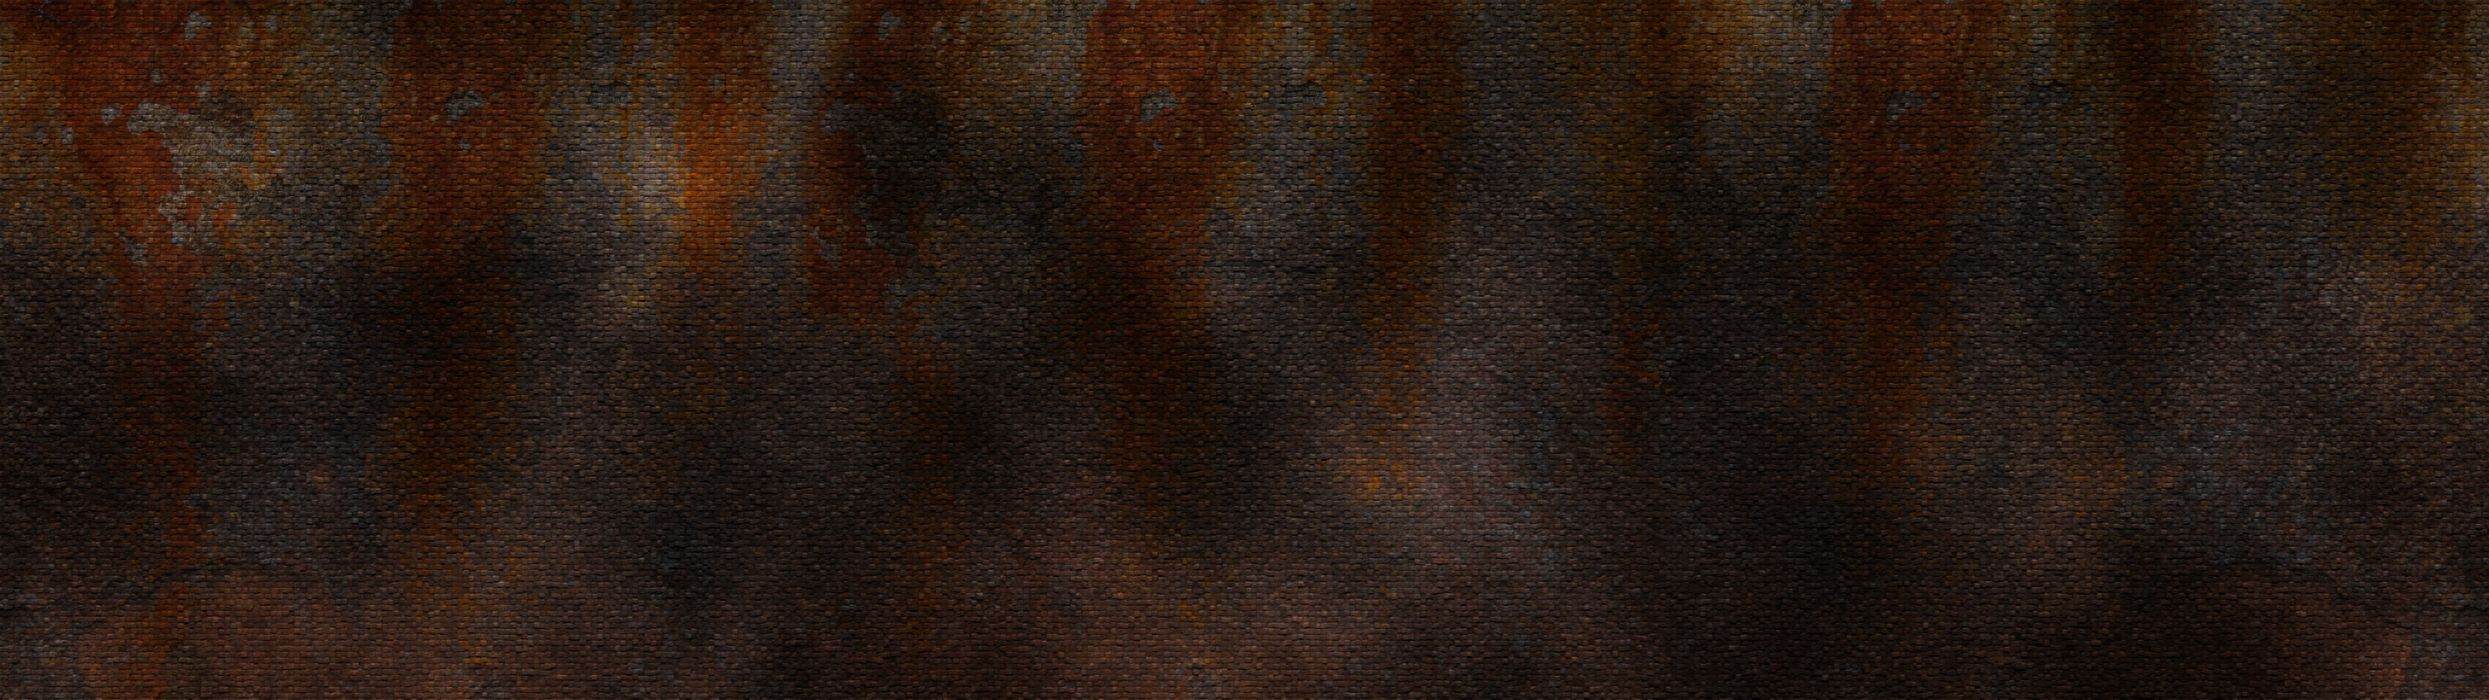 Rusty Grinded Background 2 (3840x1080) wallpaper